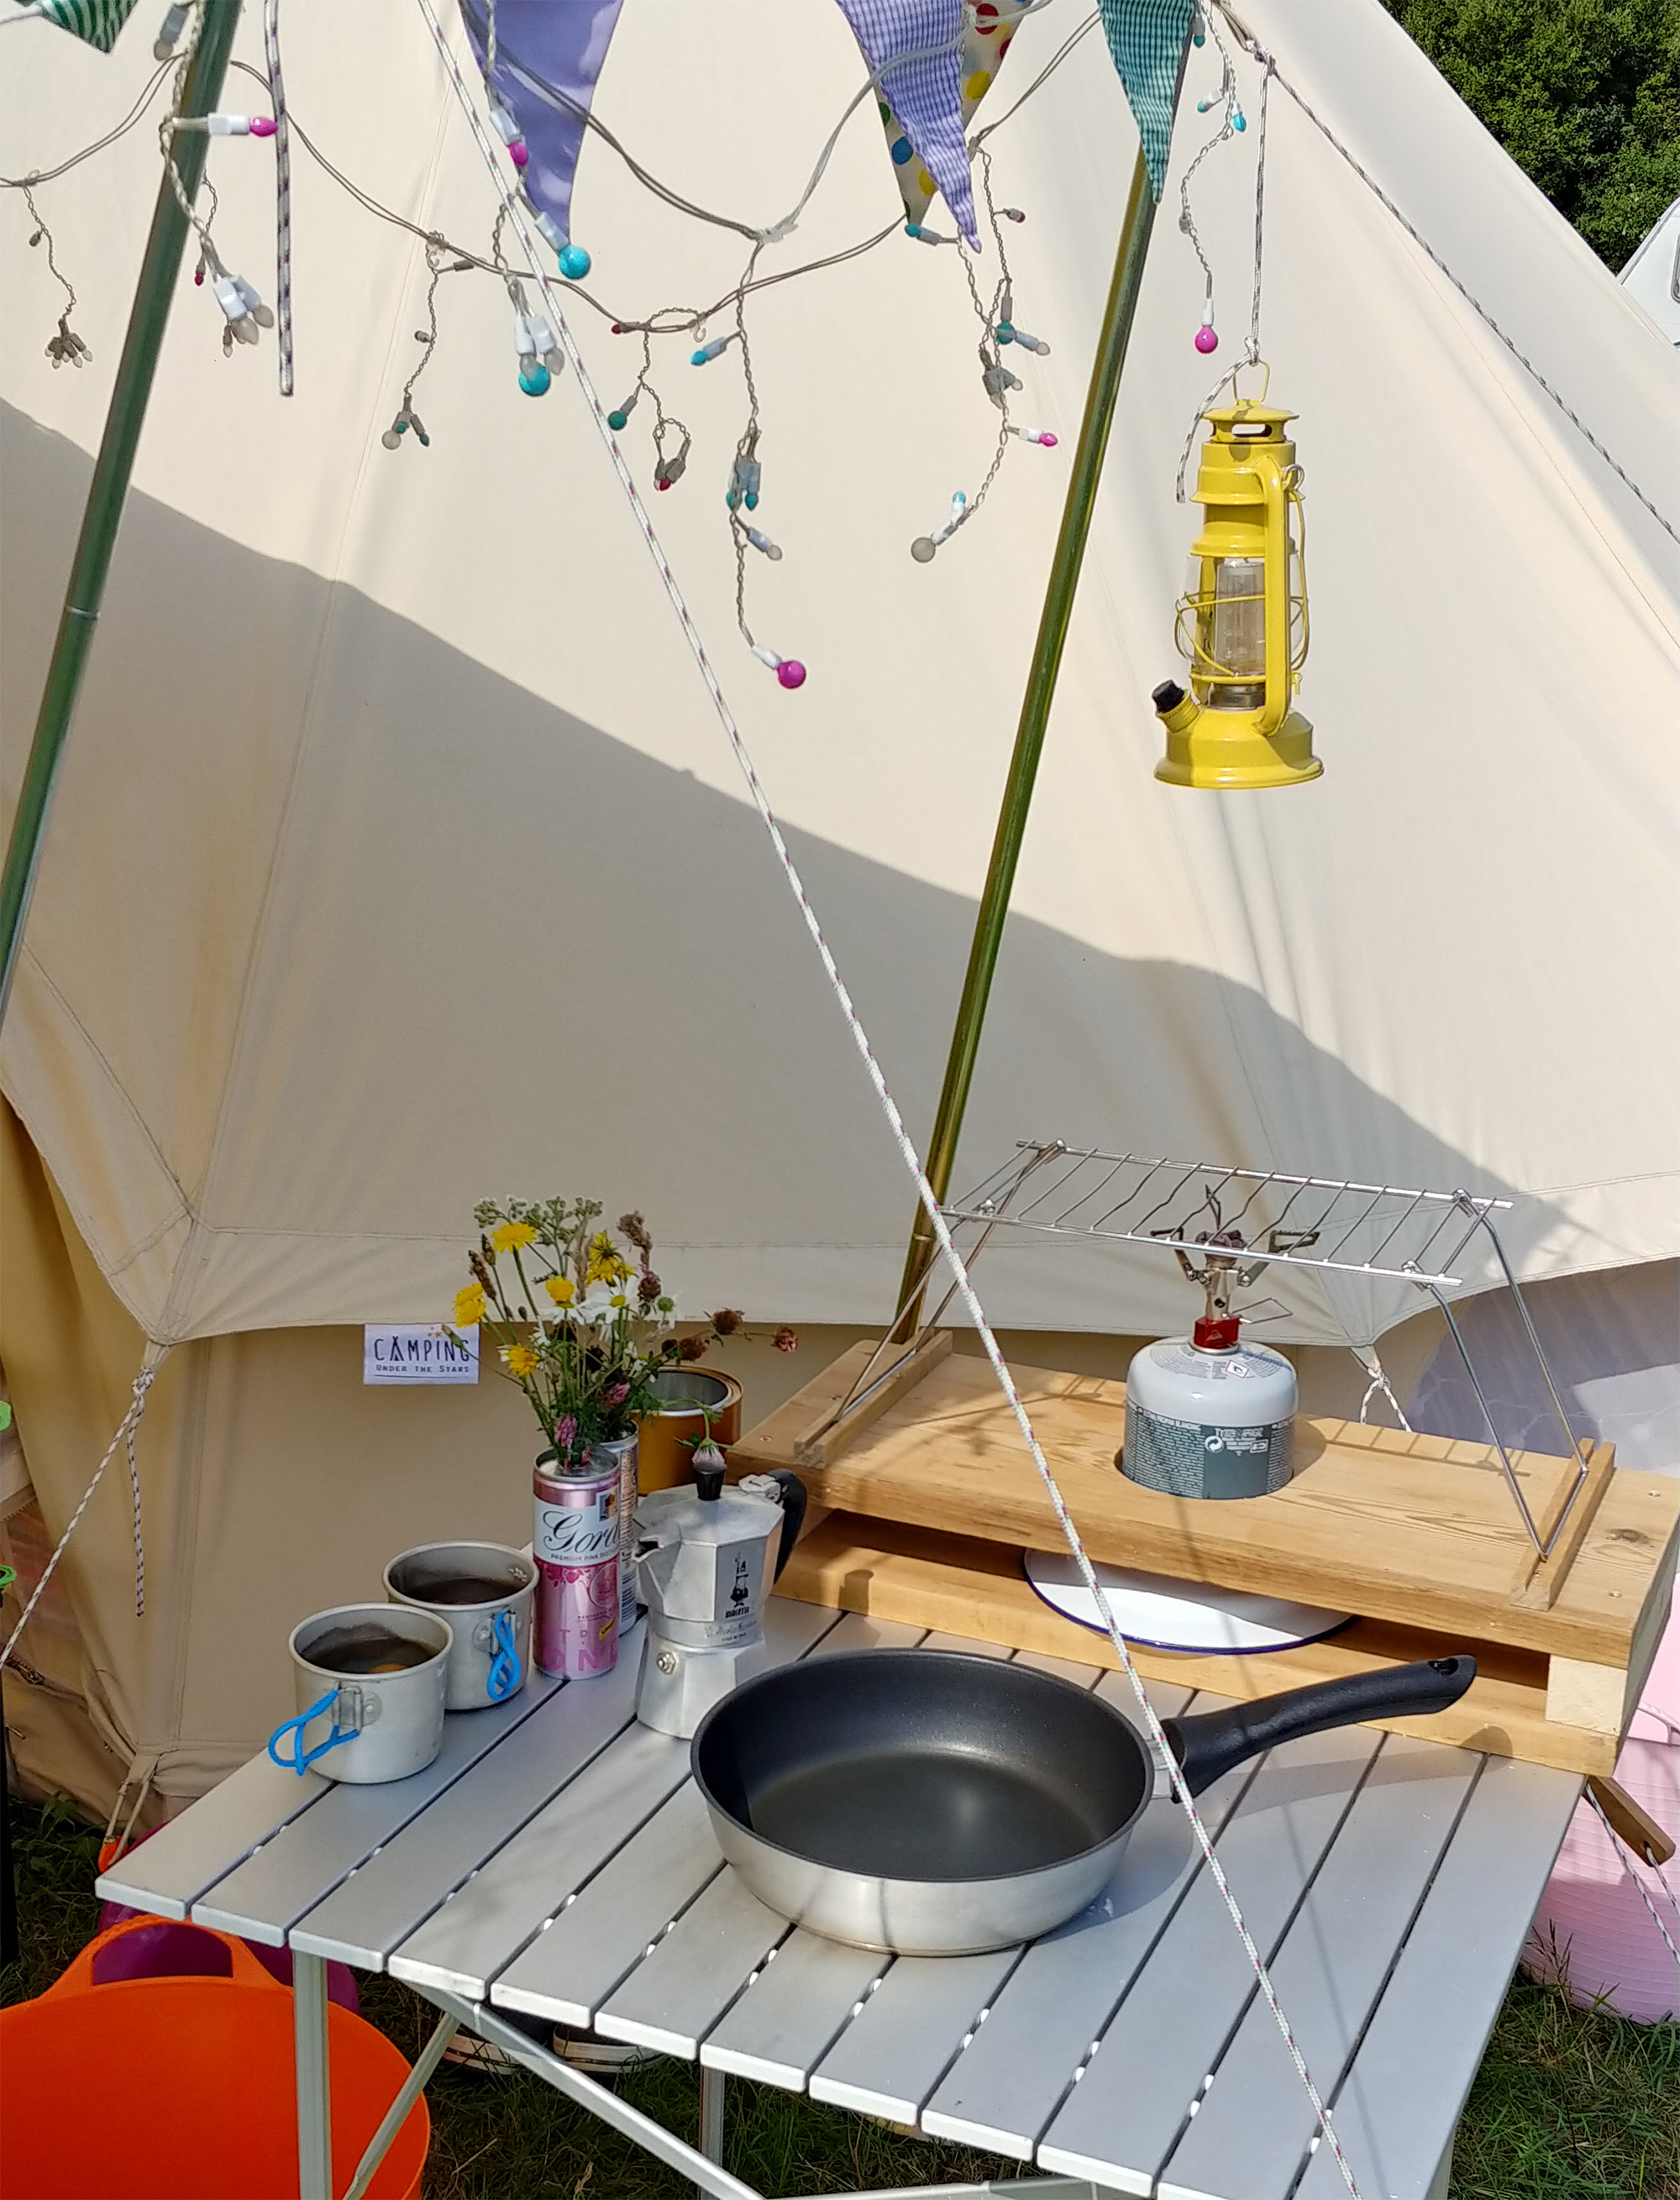 Camping kitchen.